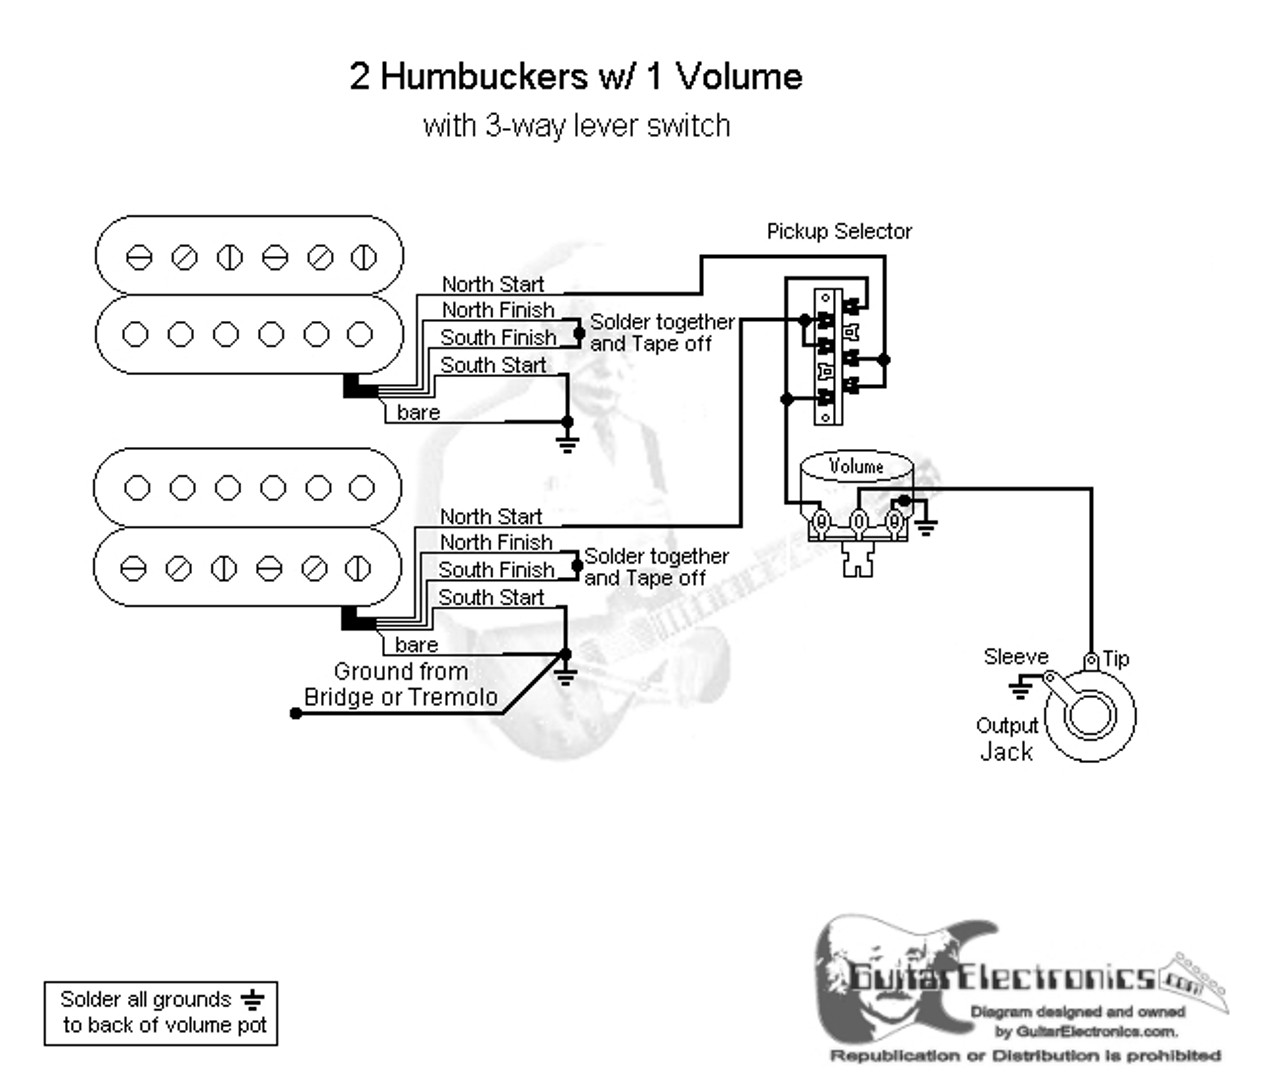 small resolution of 2 humbuckers 3 way lever switch 1 volume guitar wiring diagram 2 humbuckers 3 way switch humbucker wire